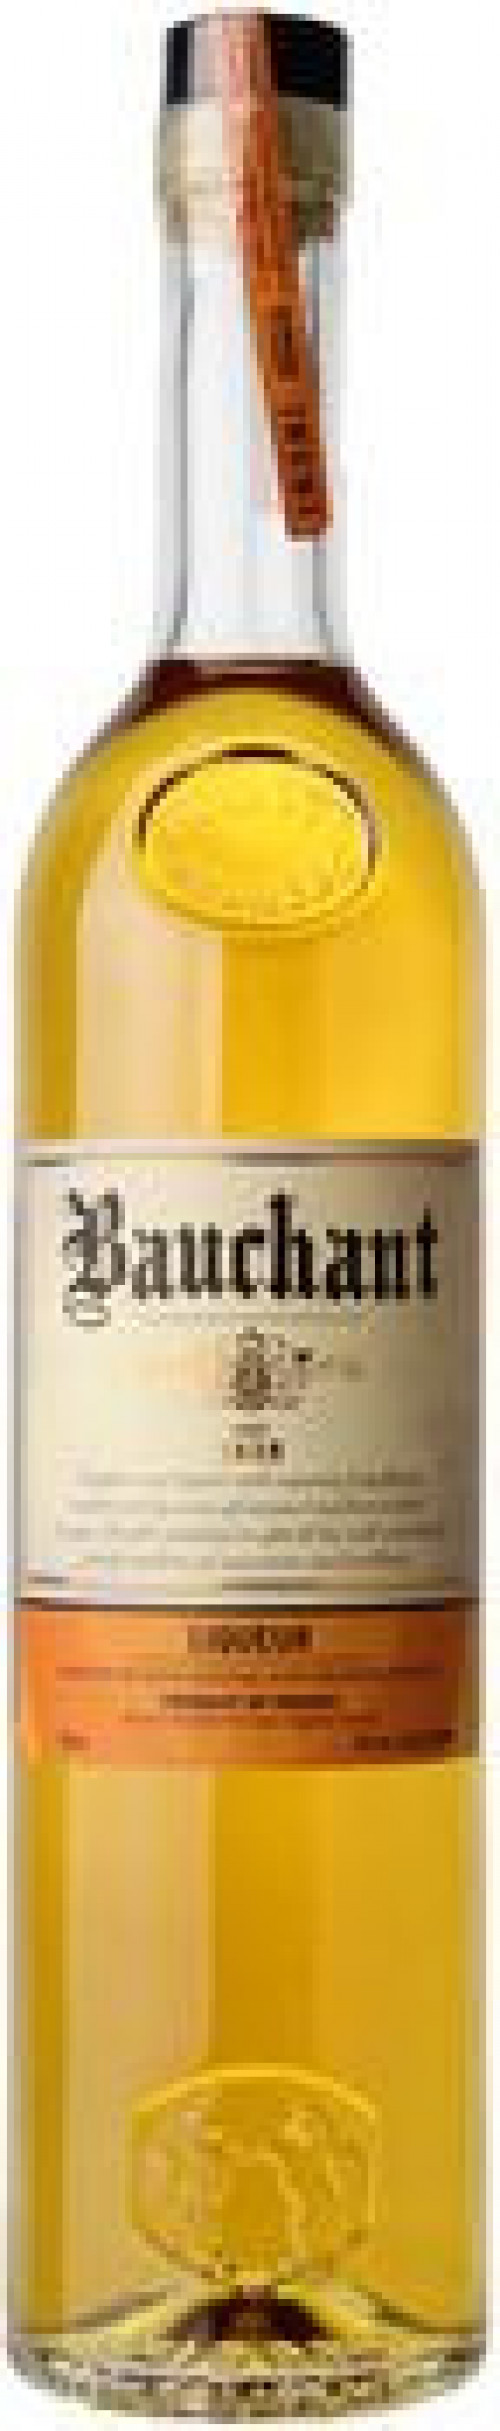 Bauchant Liqueur 750ml